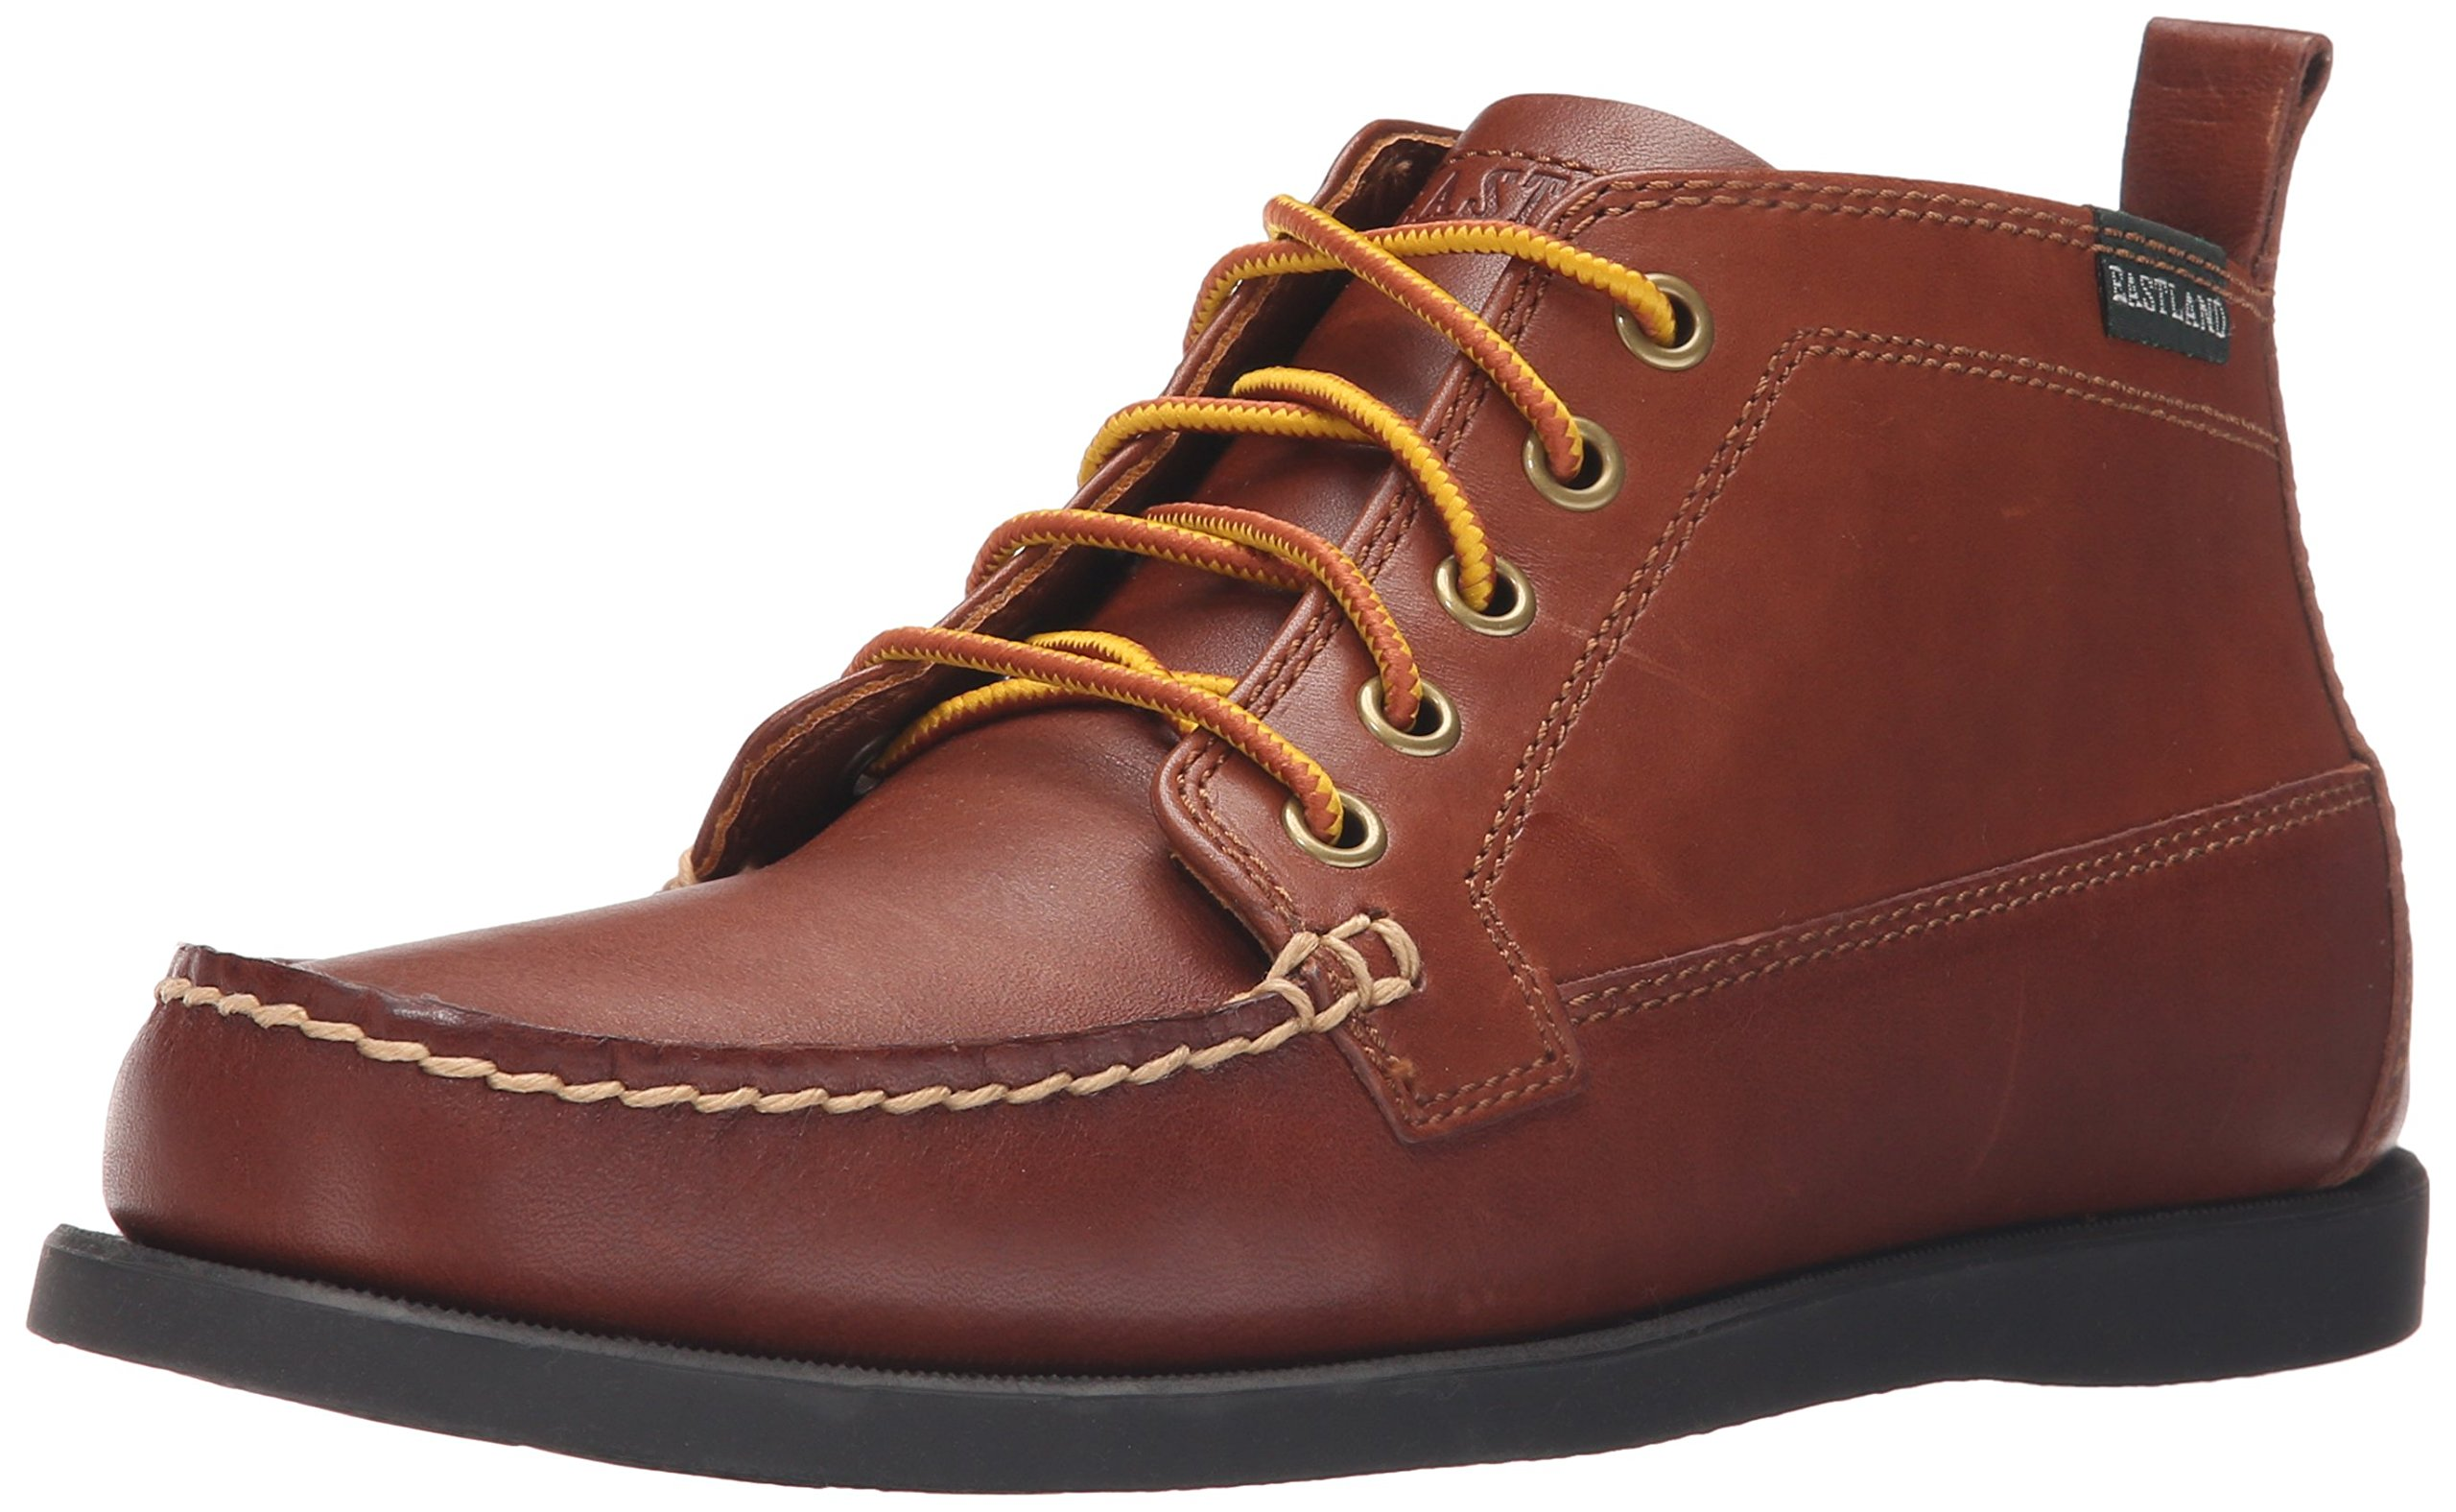 Eastland Men's Seneca Chukka Boot, Tan, 14 W US